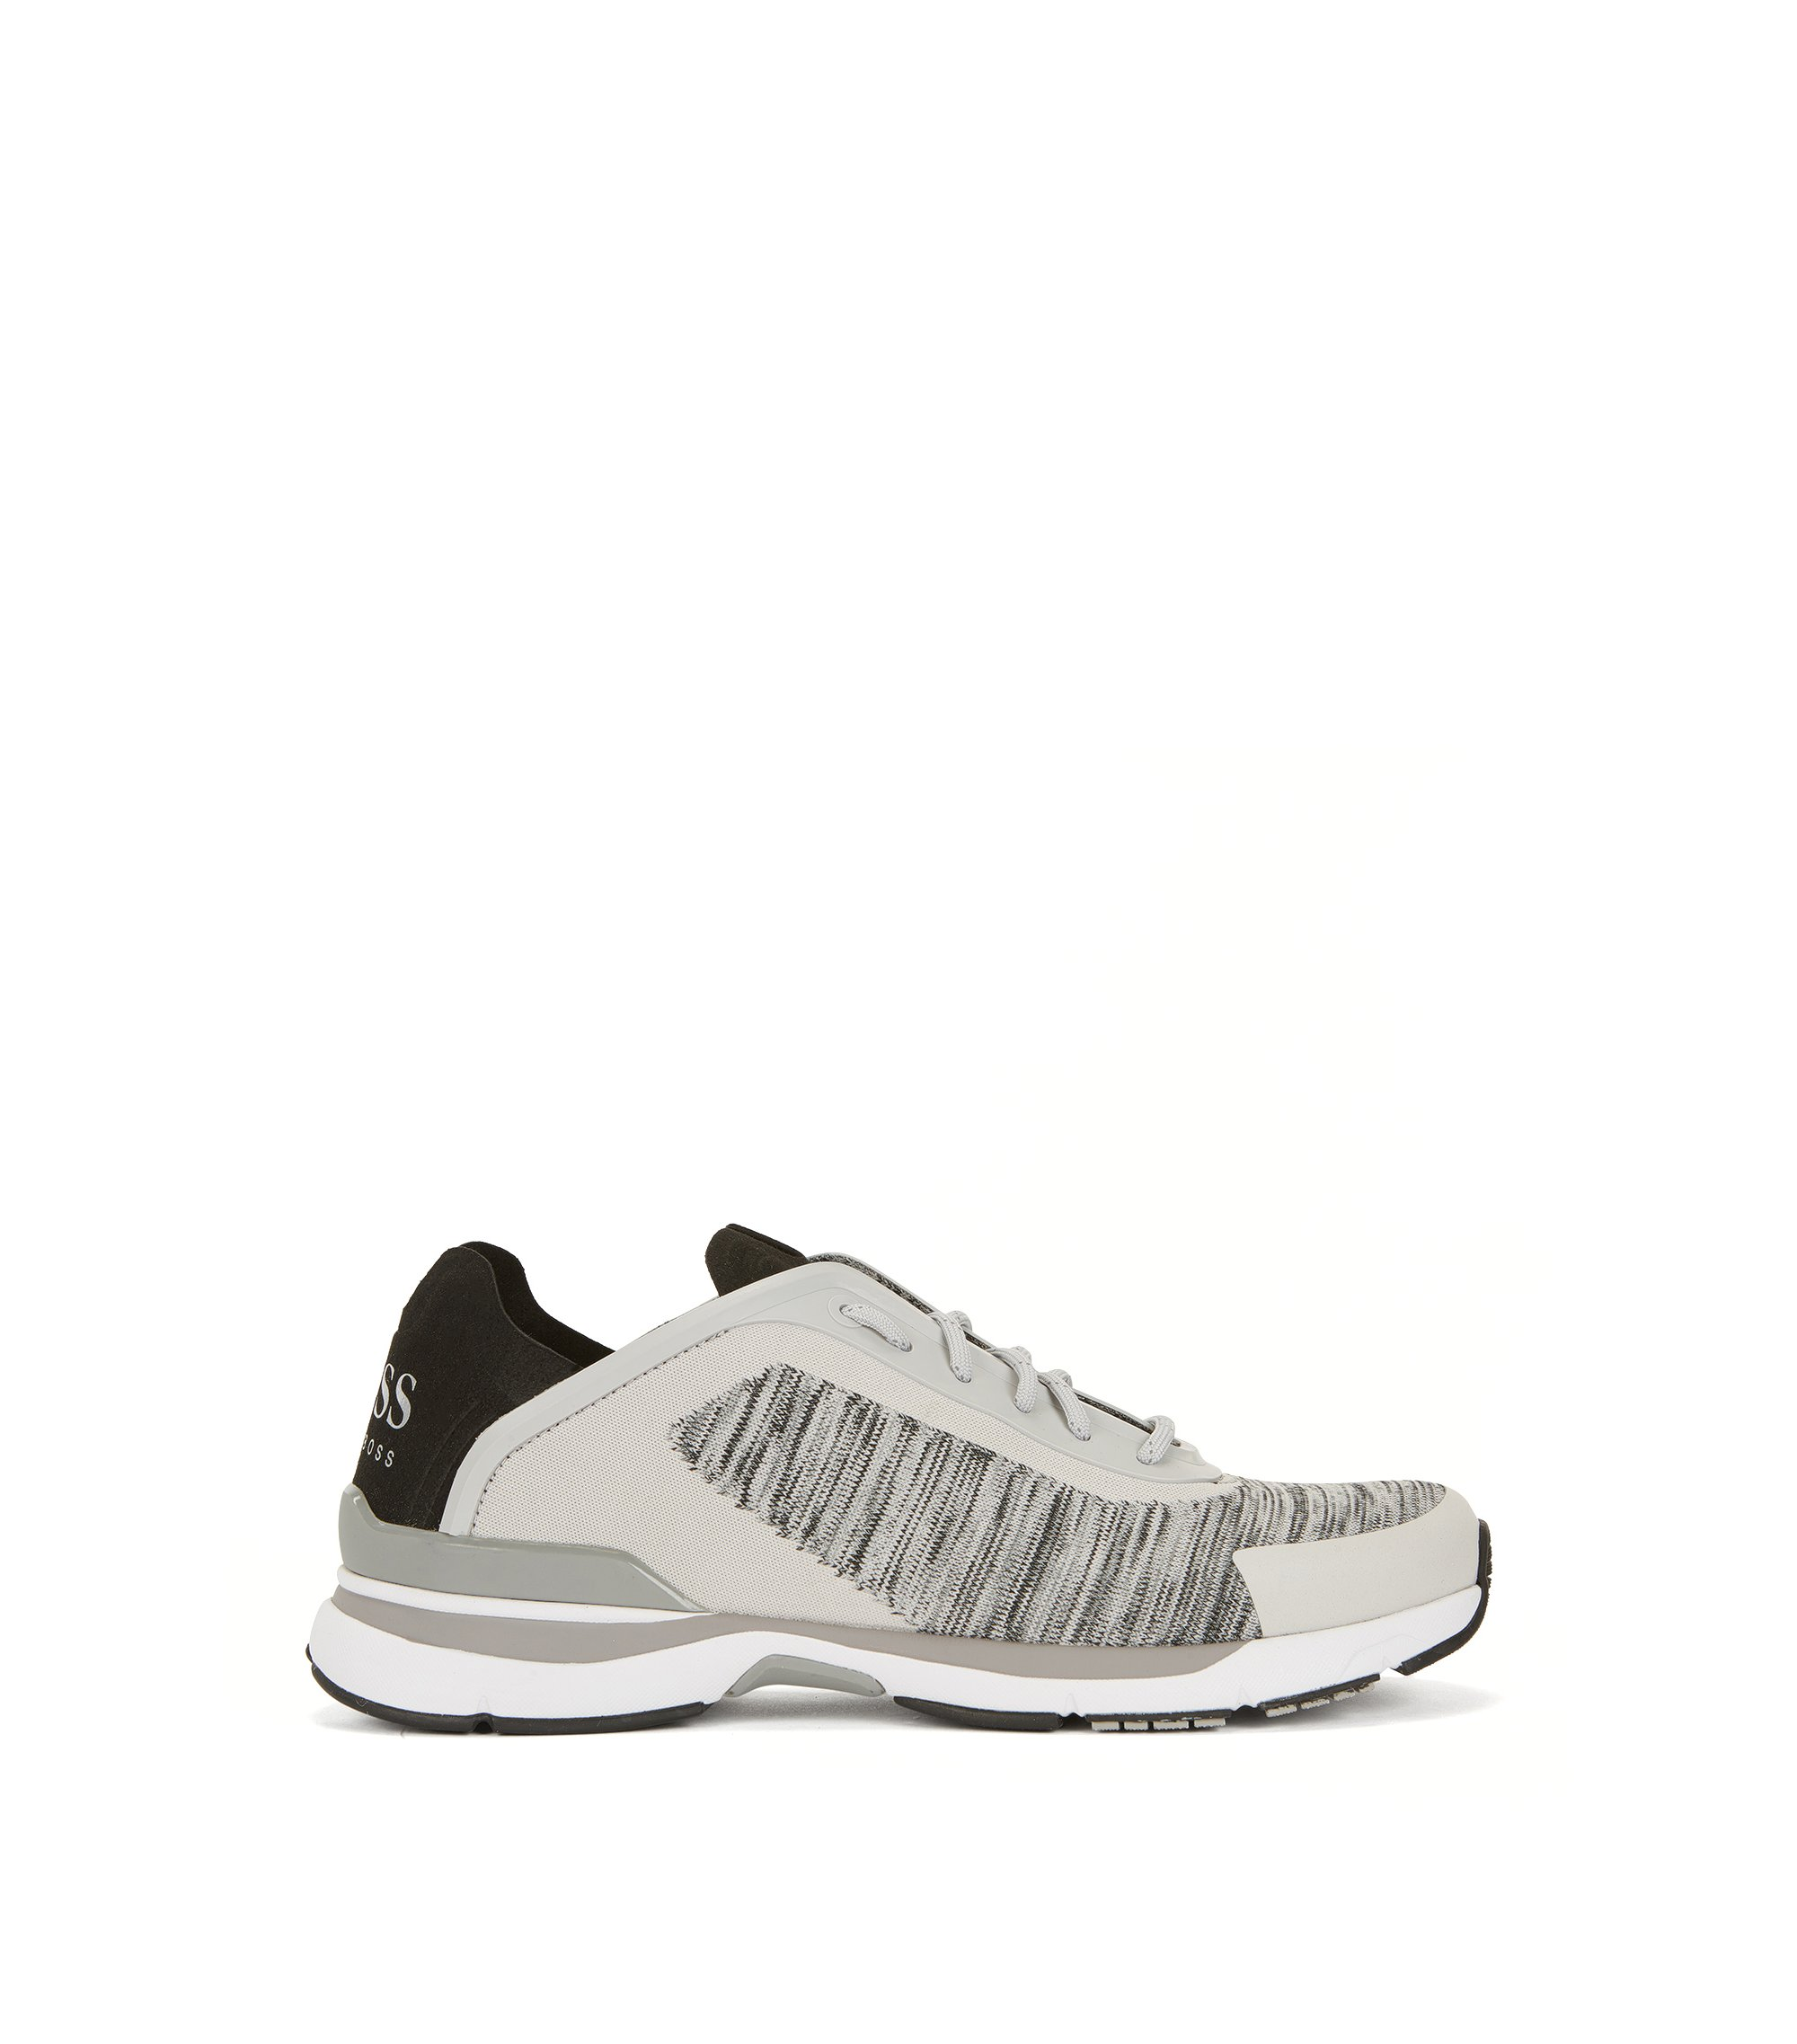 Running-inspired trainers with jacquard-knit uppers, Light Grey